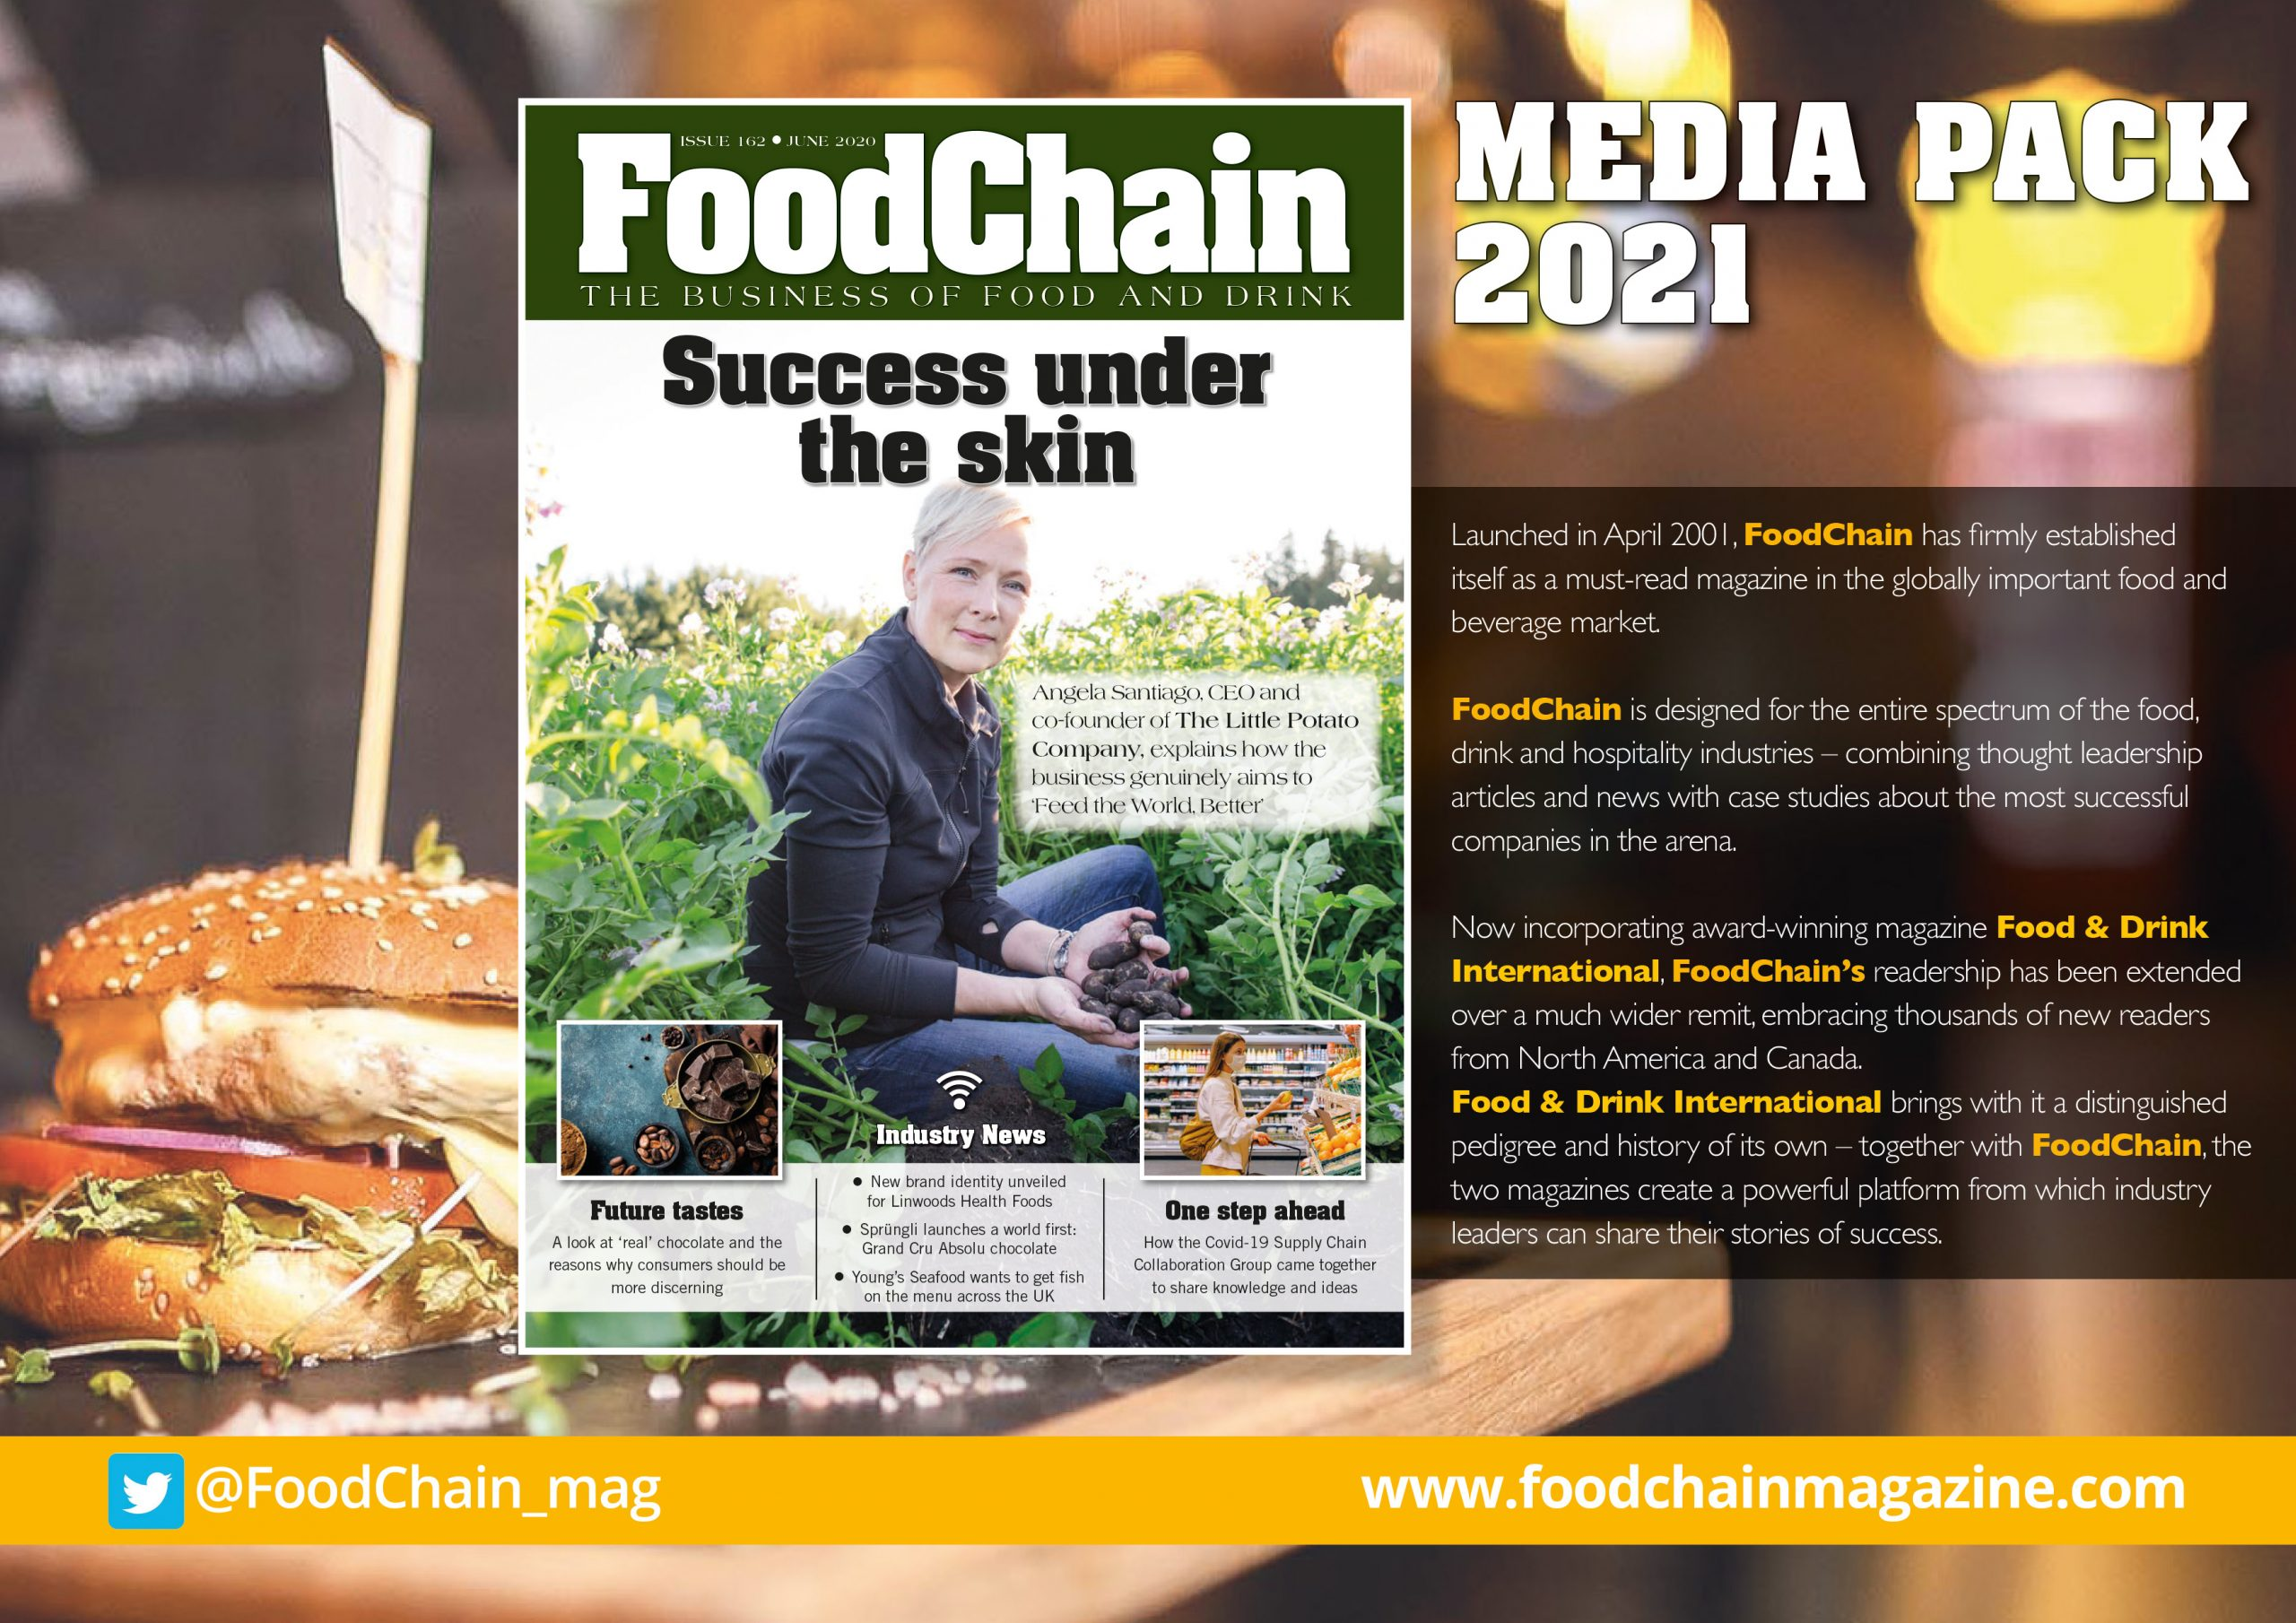 FoodChain 2021 - Media Pack Front Cover